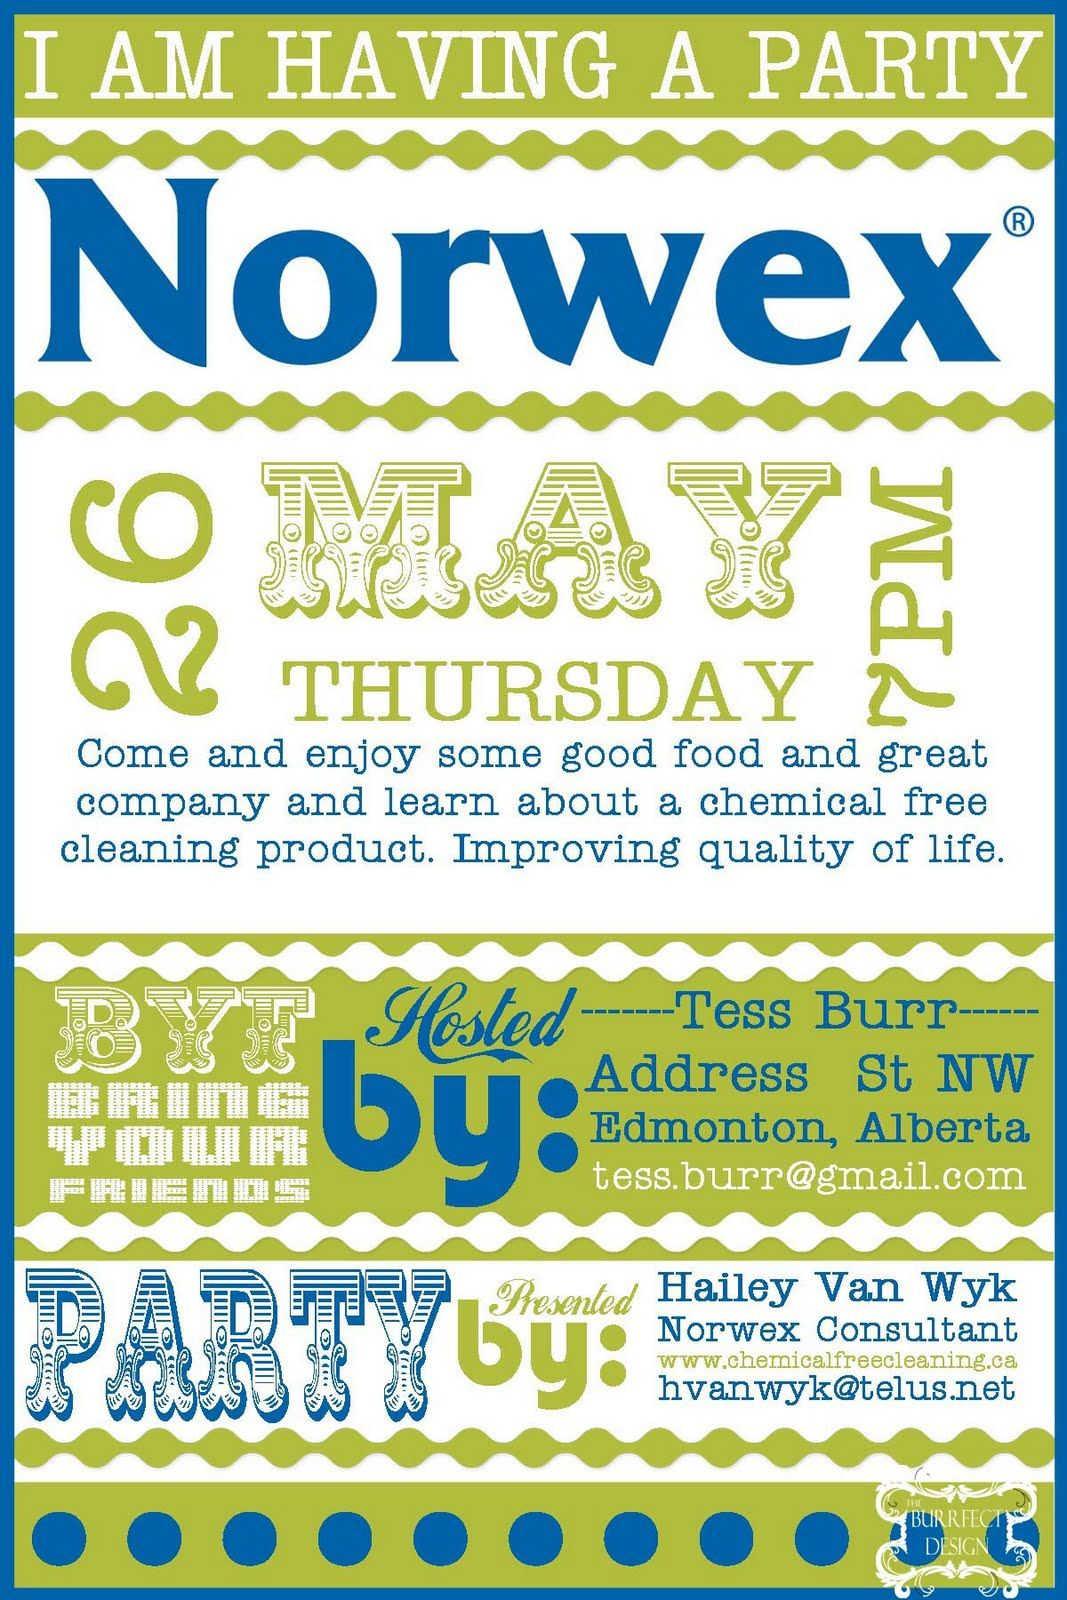 Norwex Party Invitation As An Extra Ideas About How To Make Winsome 1711201612